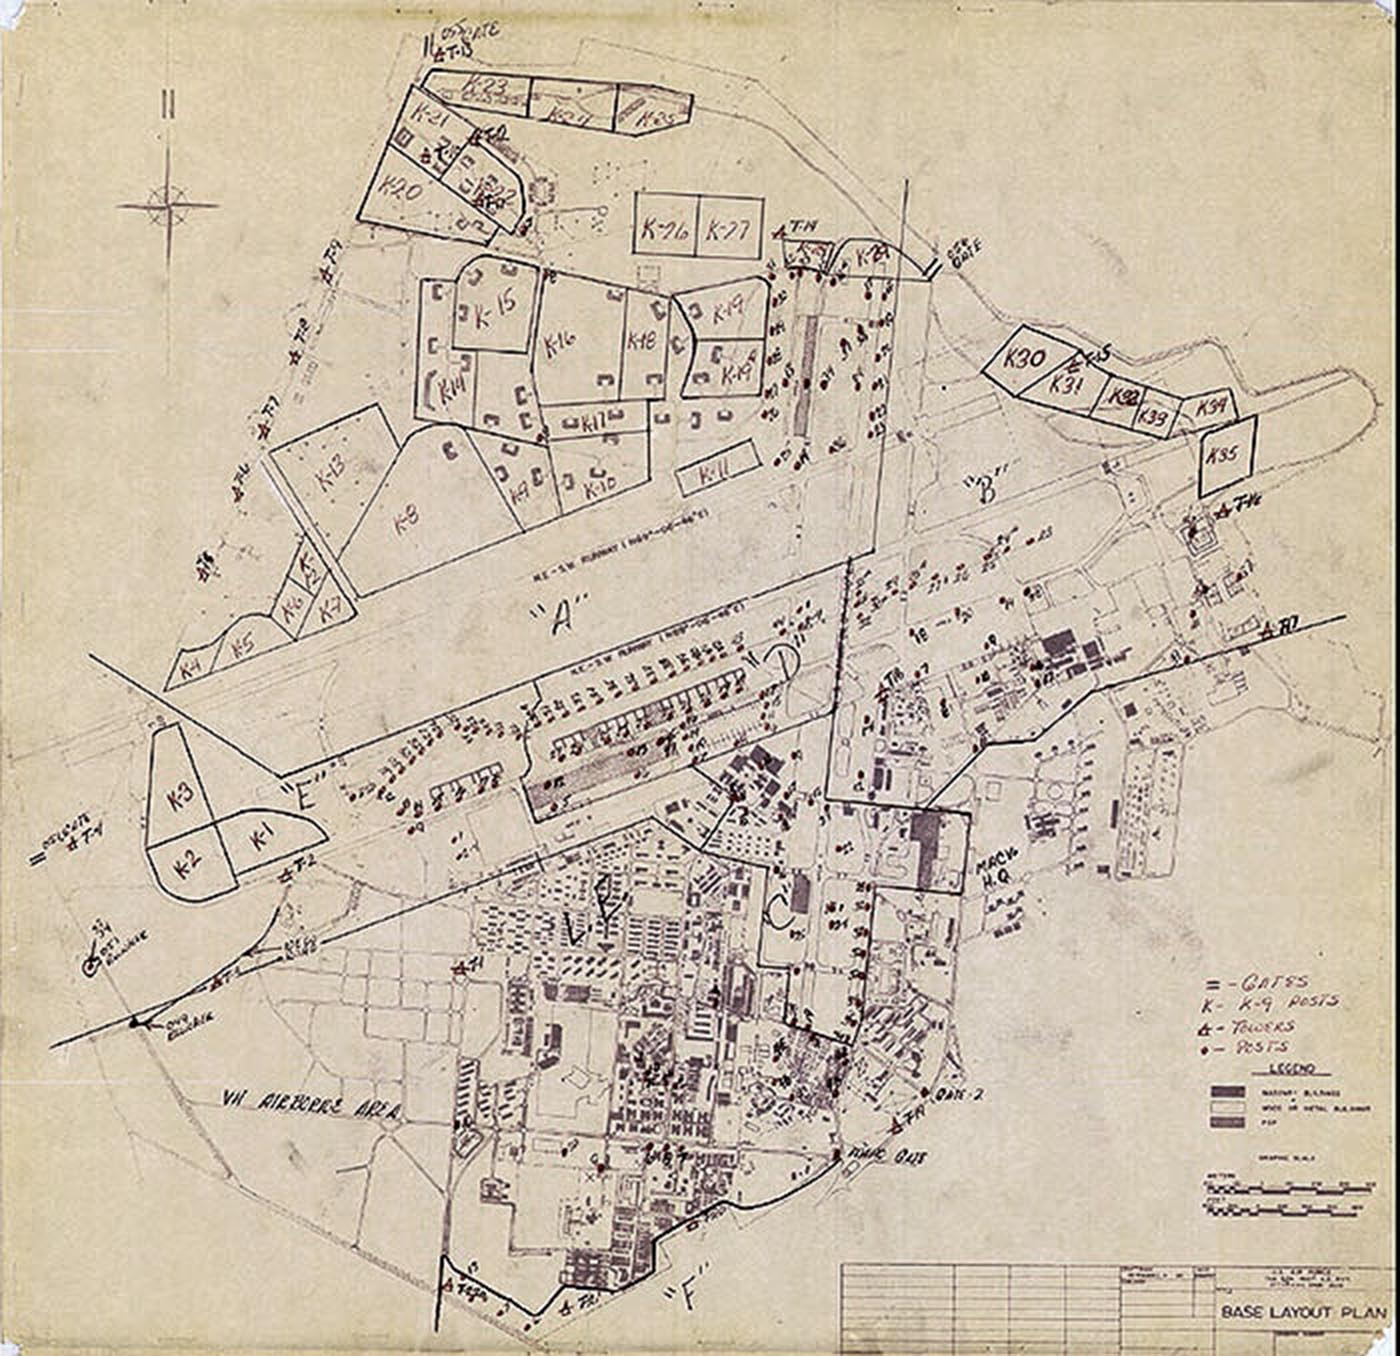 Map of 377th SPS Posts, 31 Jan 1968.